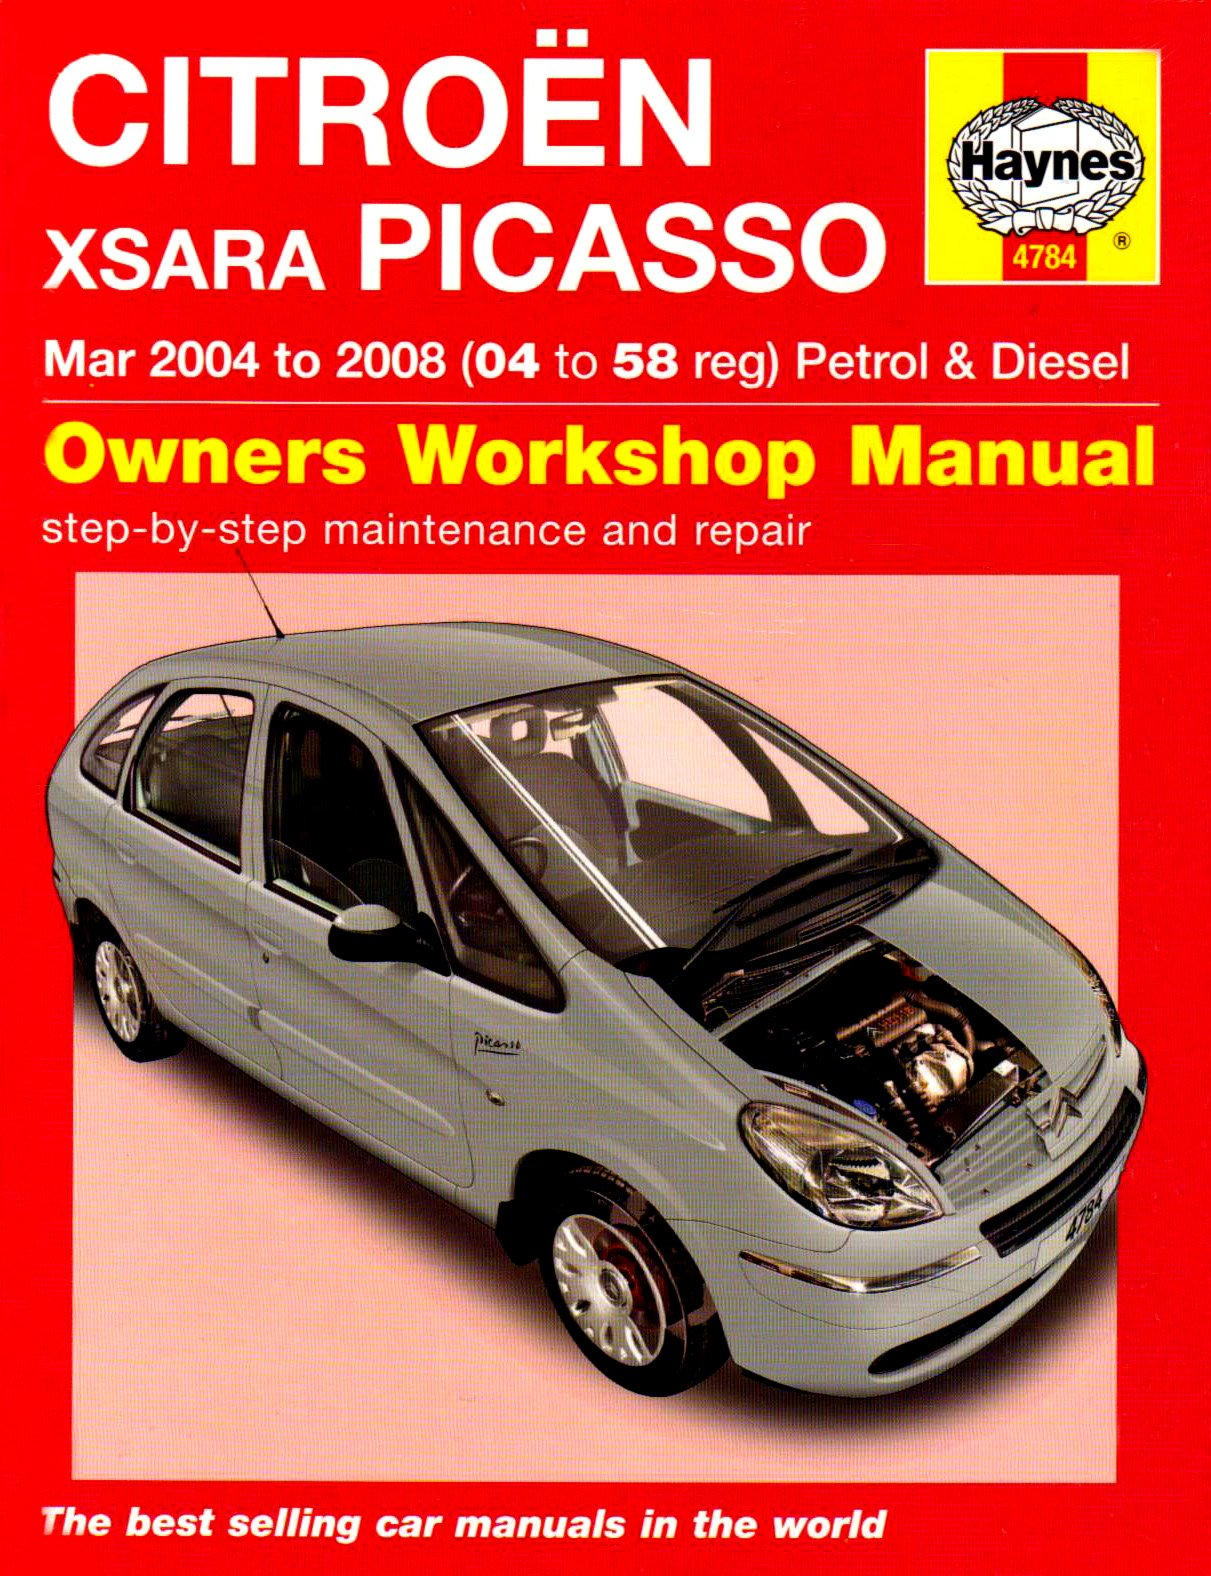 Citroen xsara picasso workshop manual | in washington, tyne and.